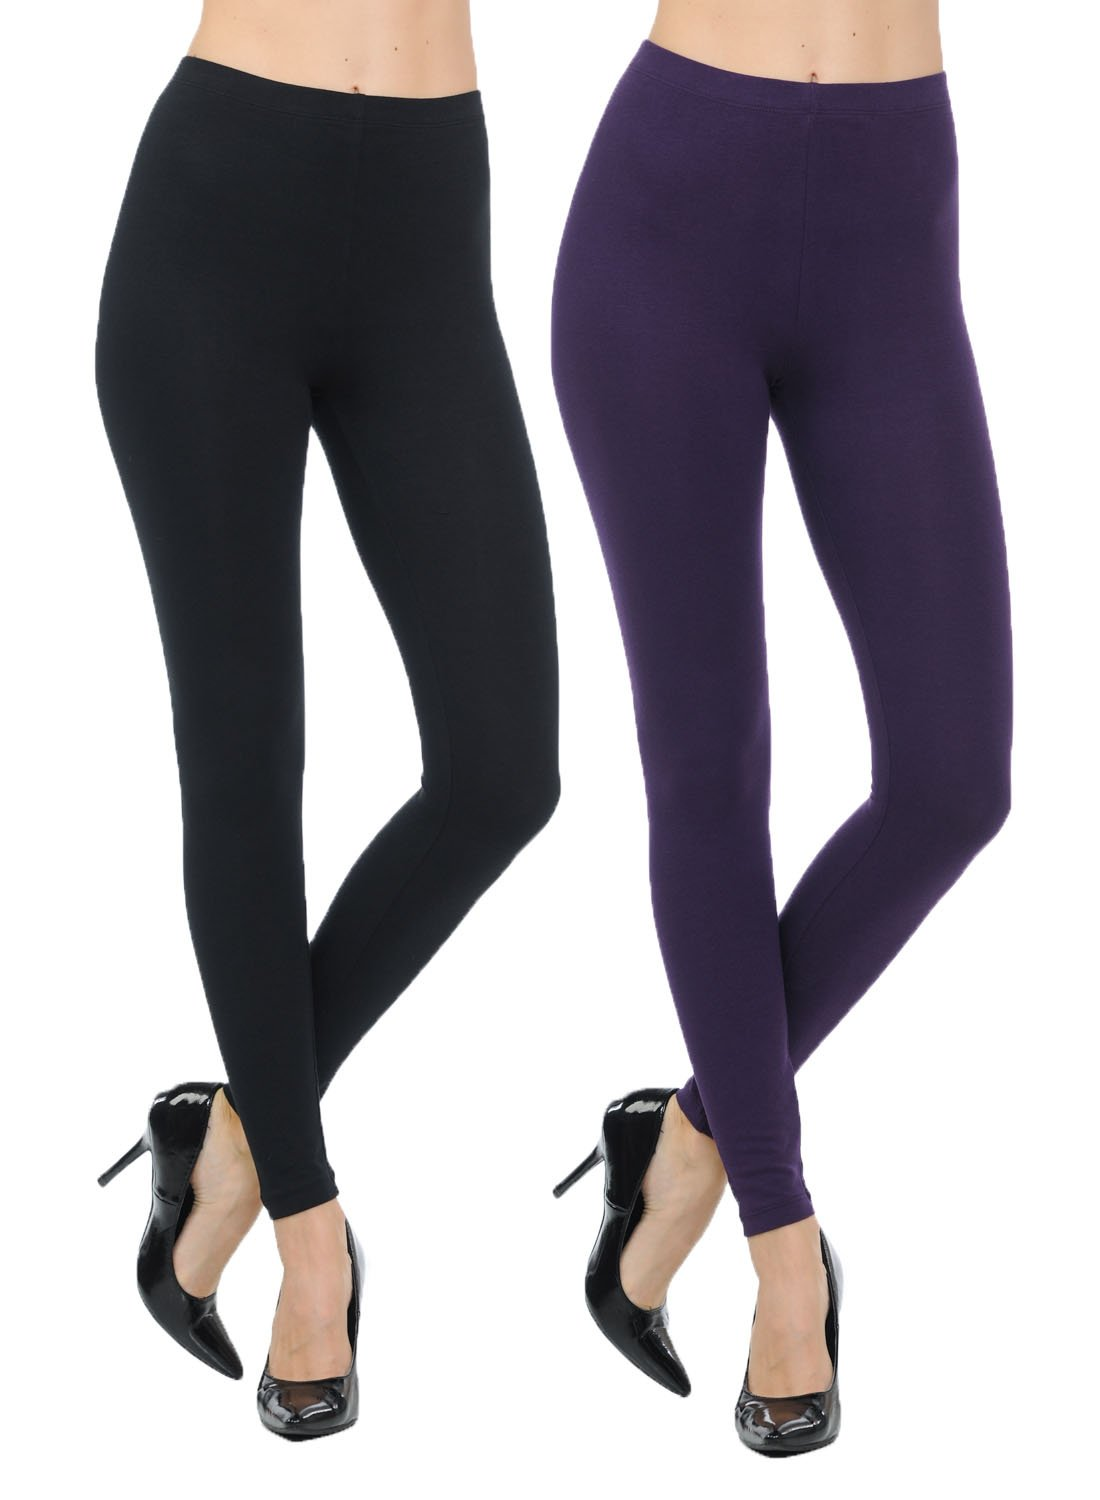 JNTOP Two Pack Cotton Leggings Black/Dark Purple Large